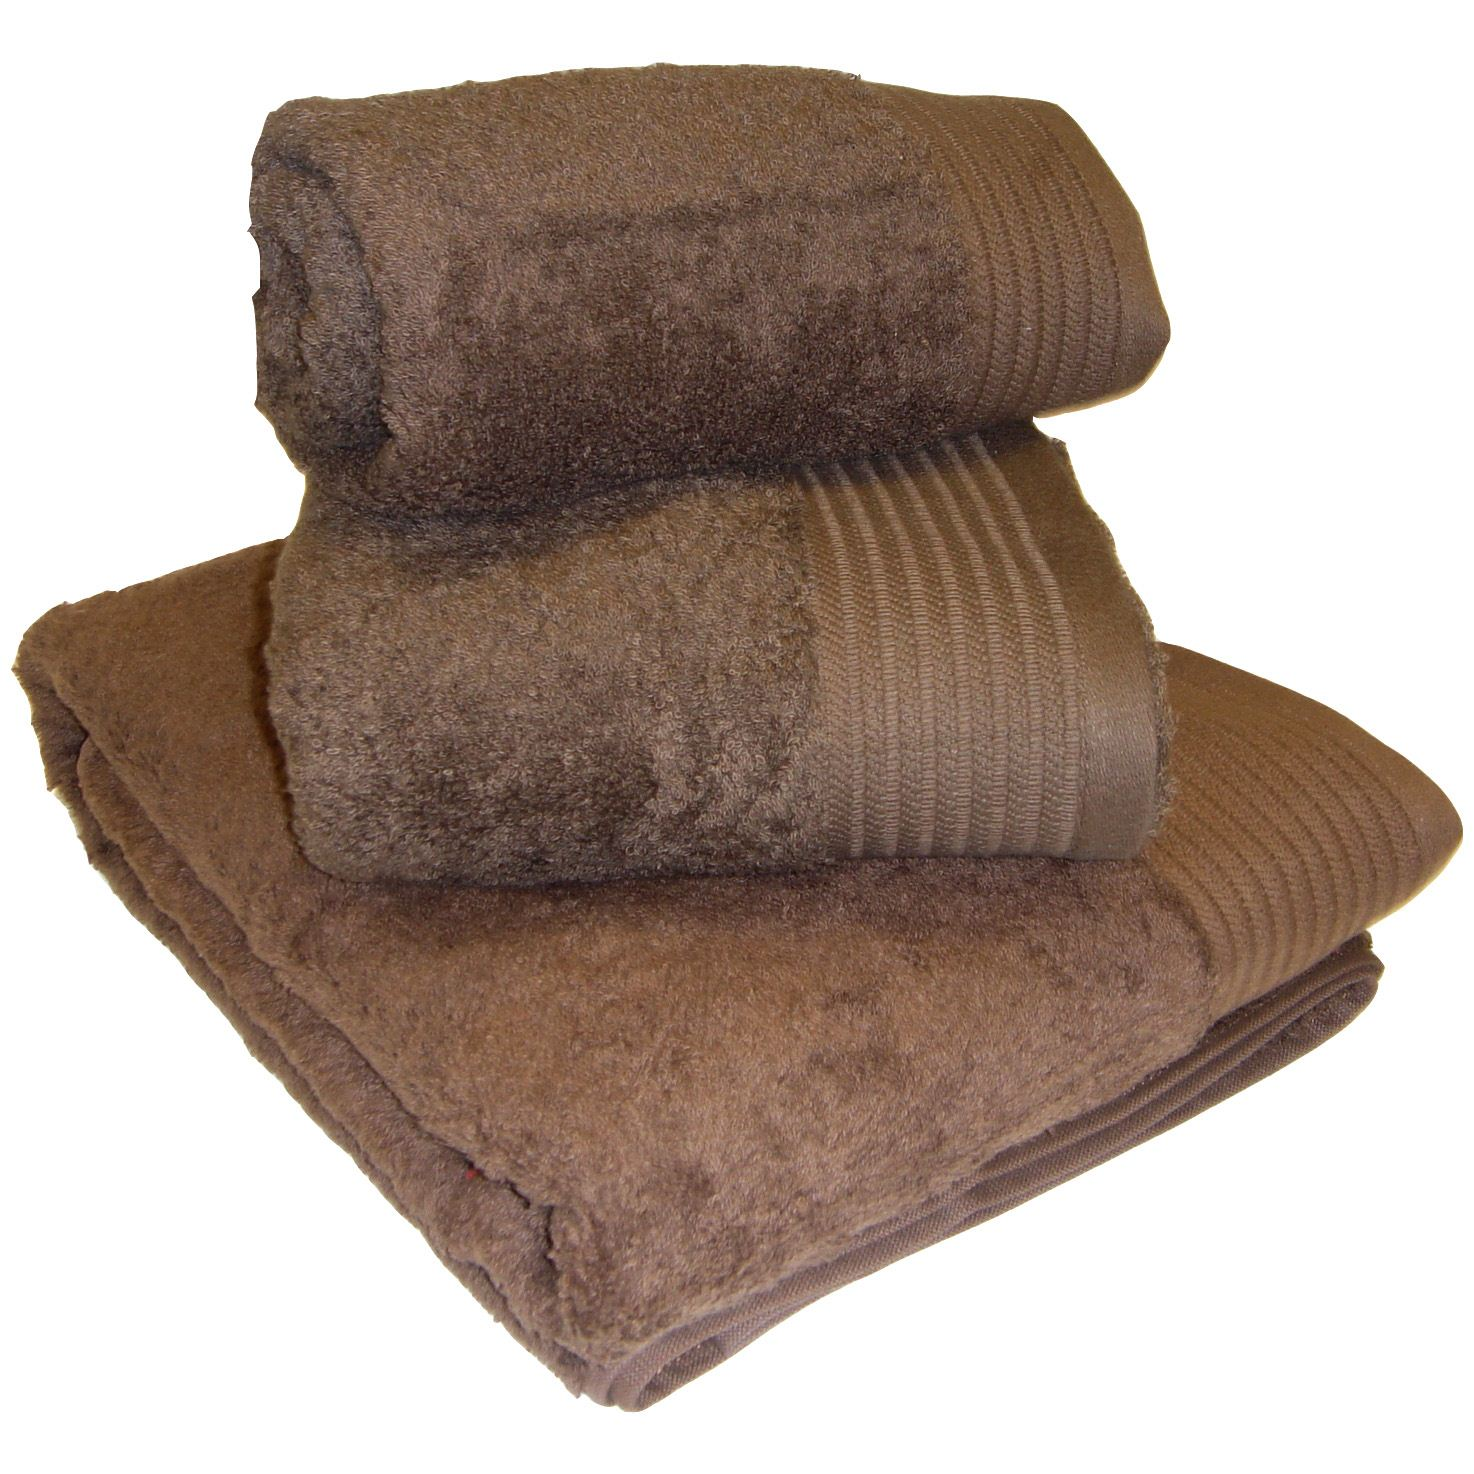 Sears has a selection of bath towel sets that include hand towels, washcloths and bath towels for your family to use. Purchase bed and bath accessories you love to help make your bedroom and bathroom into your own personal getaway. Skip the hotel and enjoy your own personal spa for .